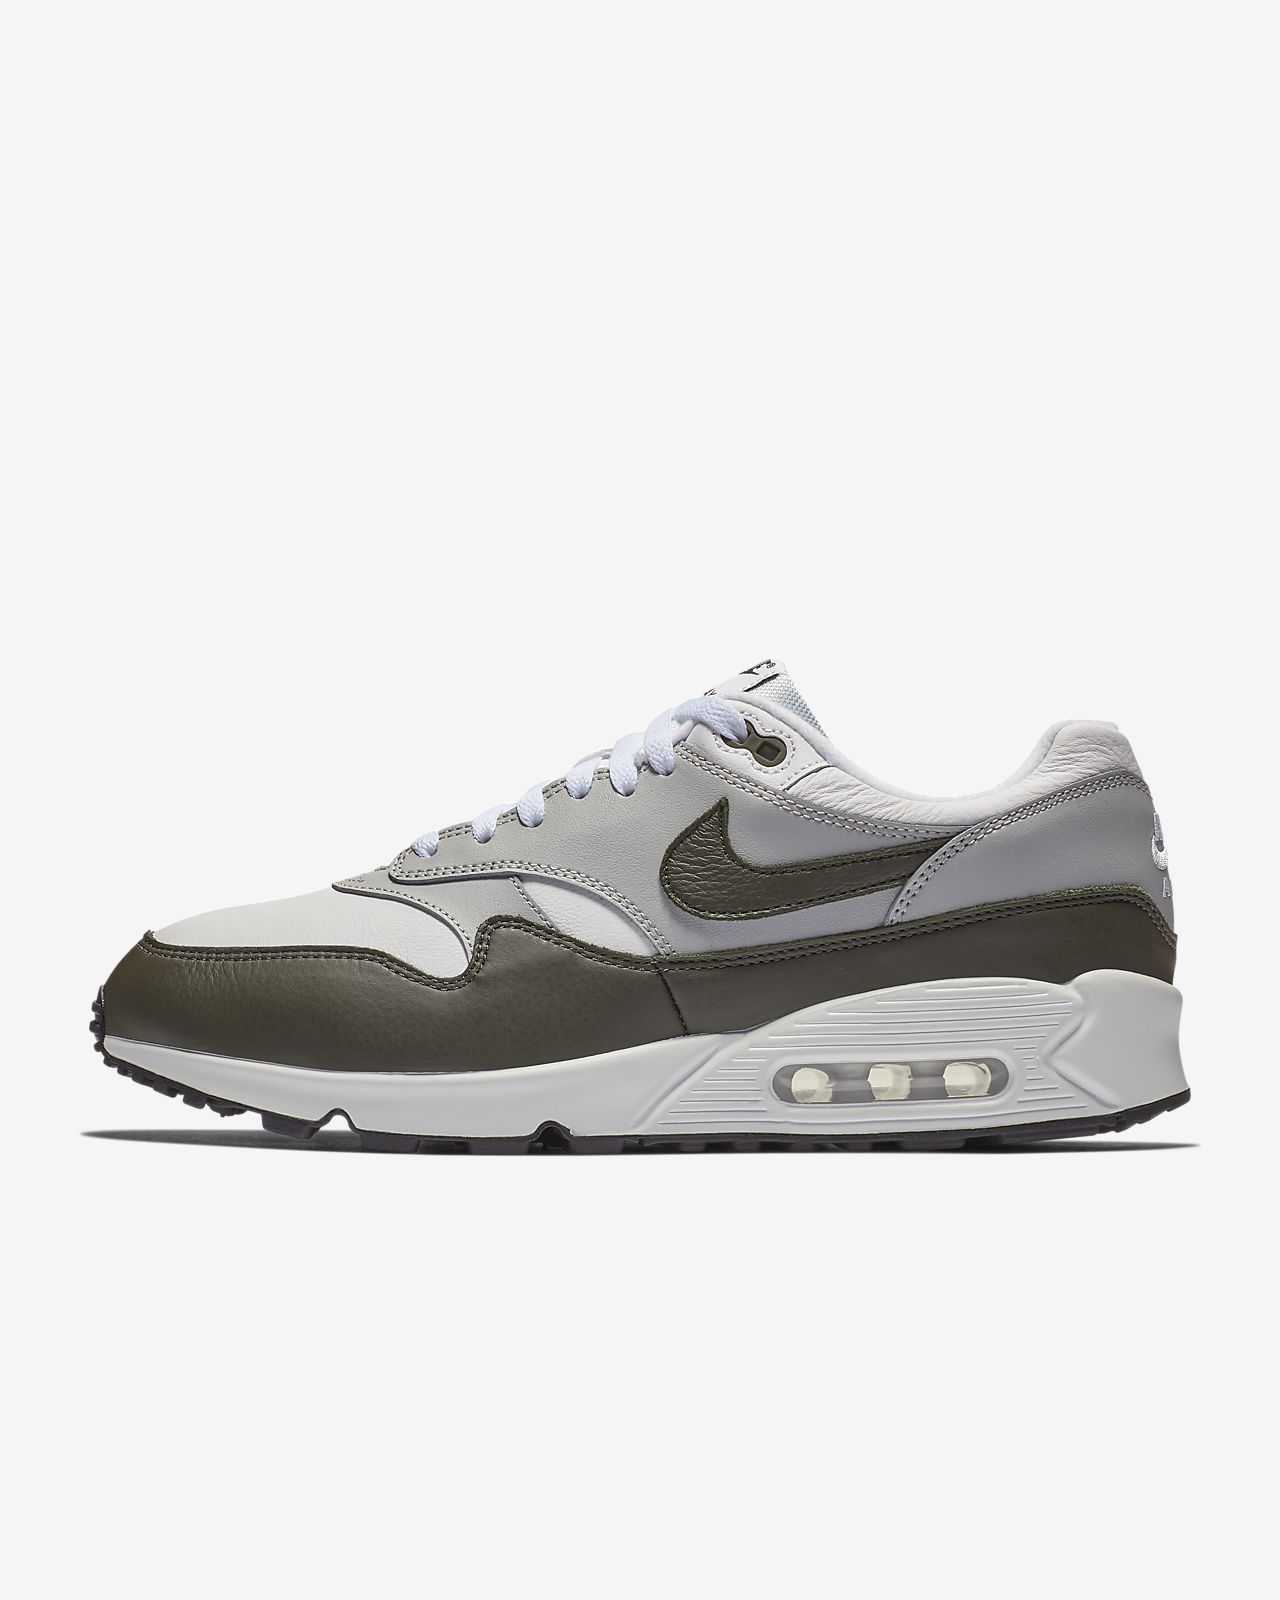 quality design 02317 45302 Men s Shoe. Nike Air Max 90 1